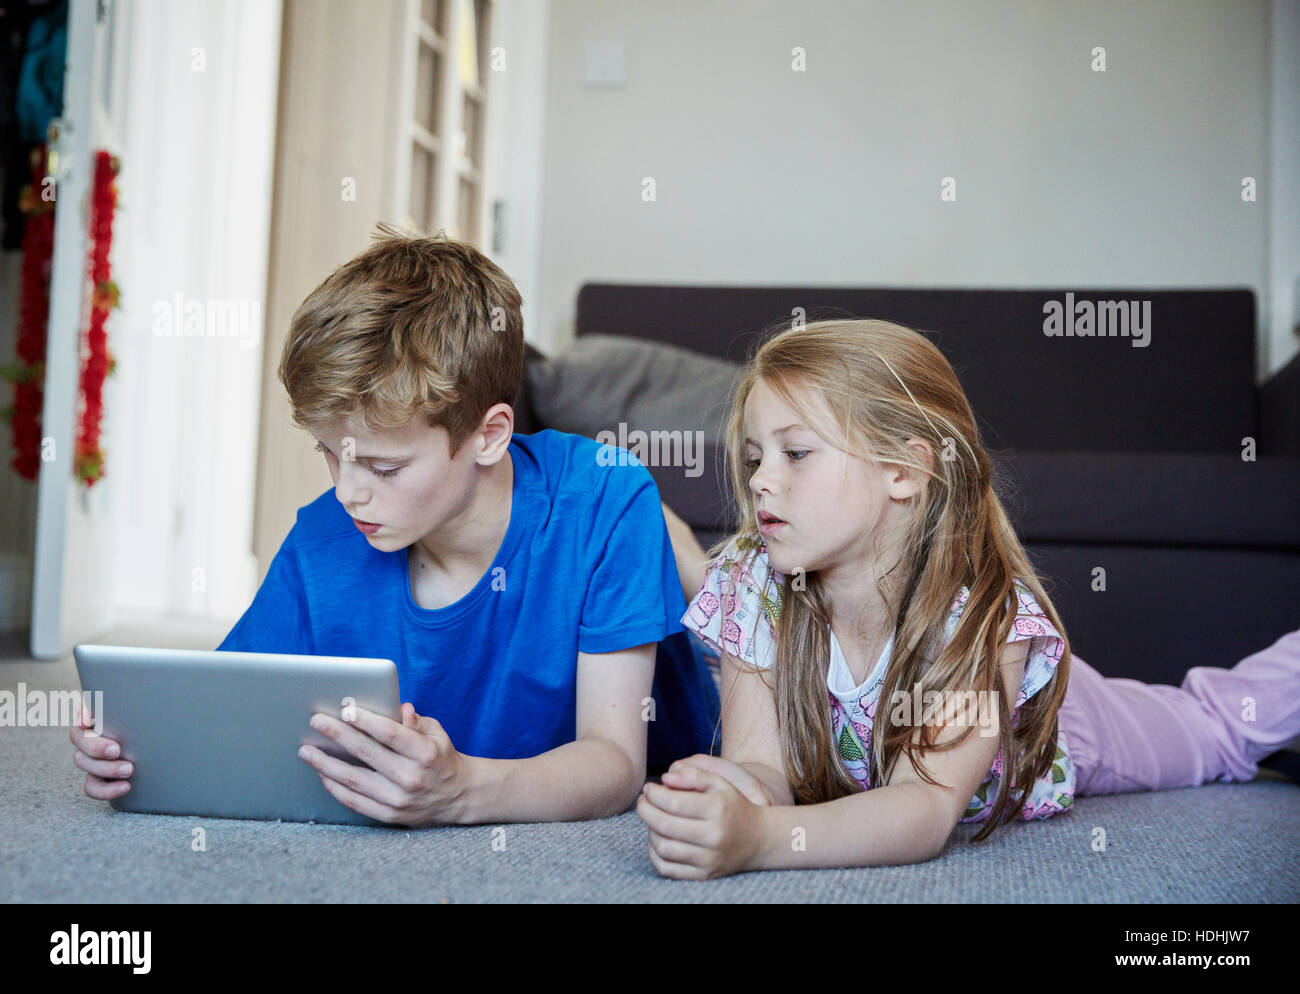 Two children lying on their stomachs sharing a digital tablet watching the screen. - Stock Image